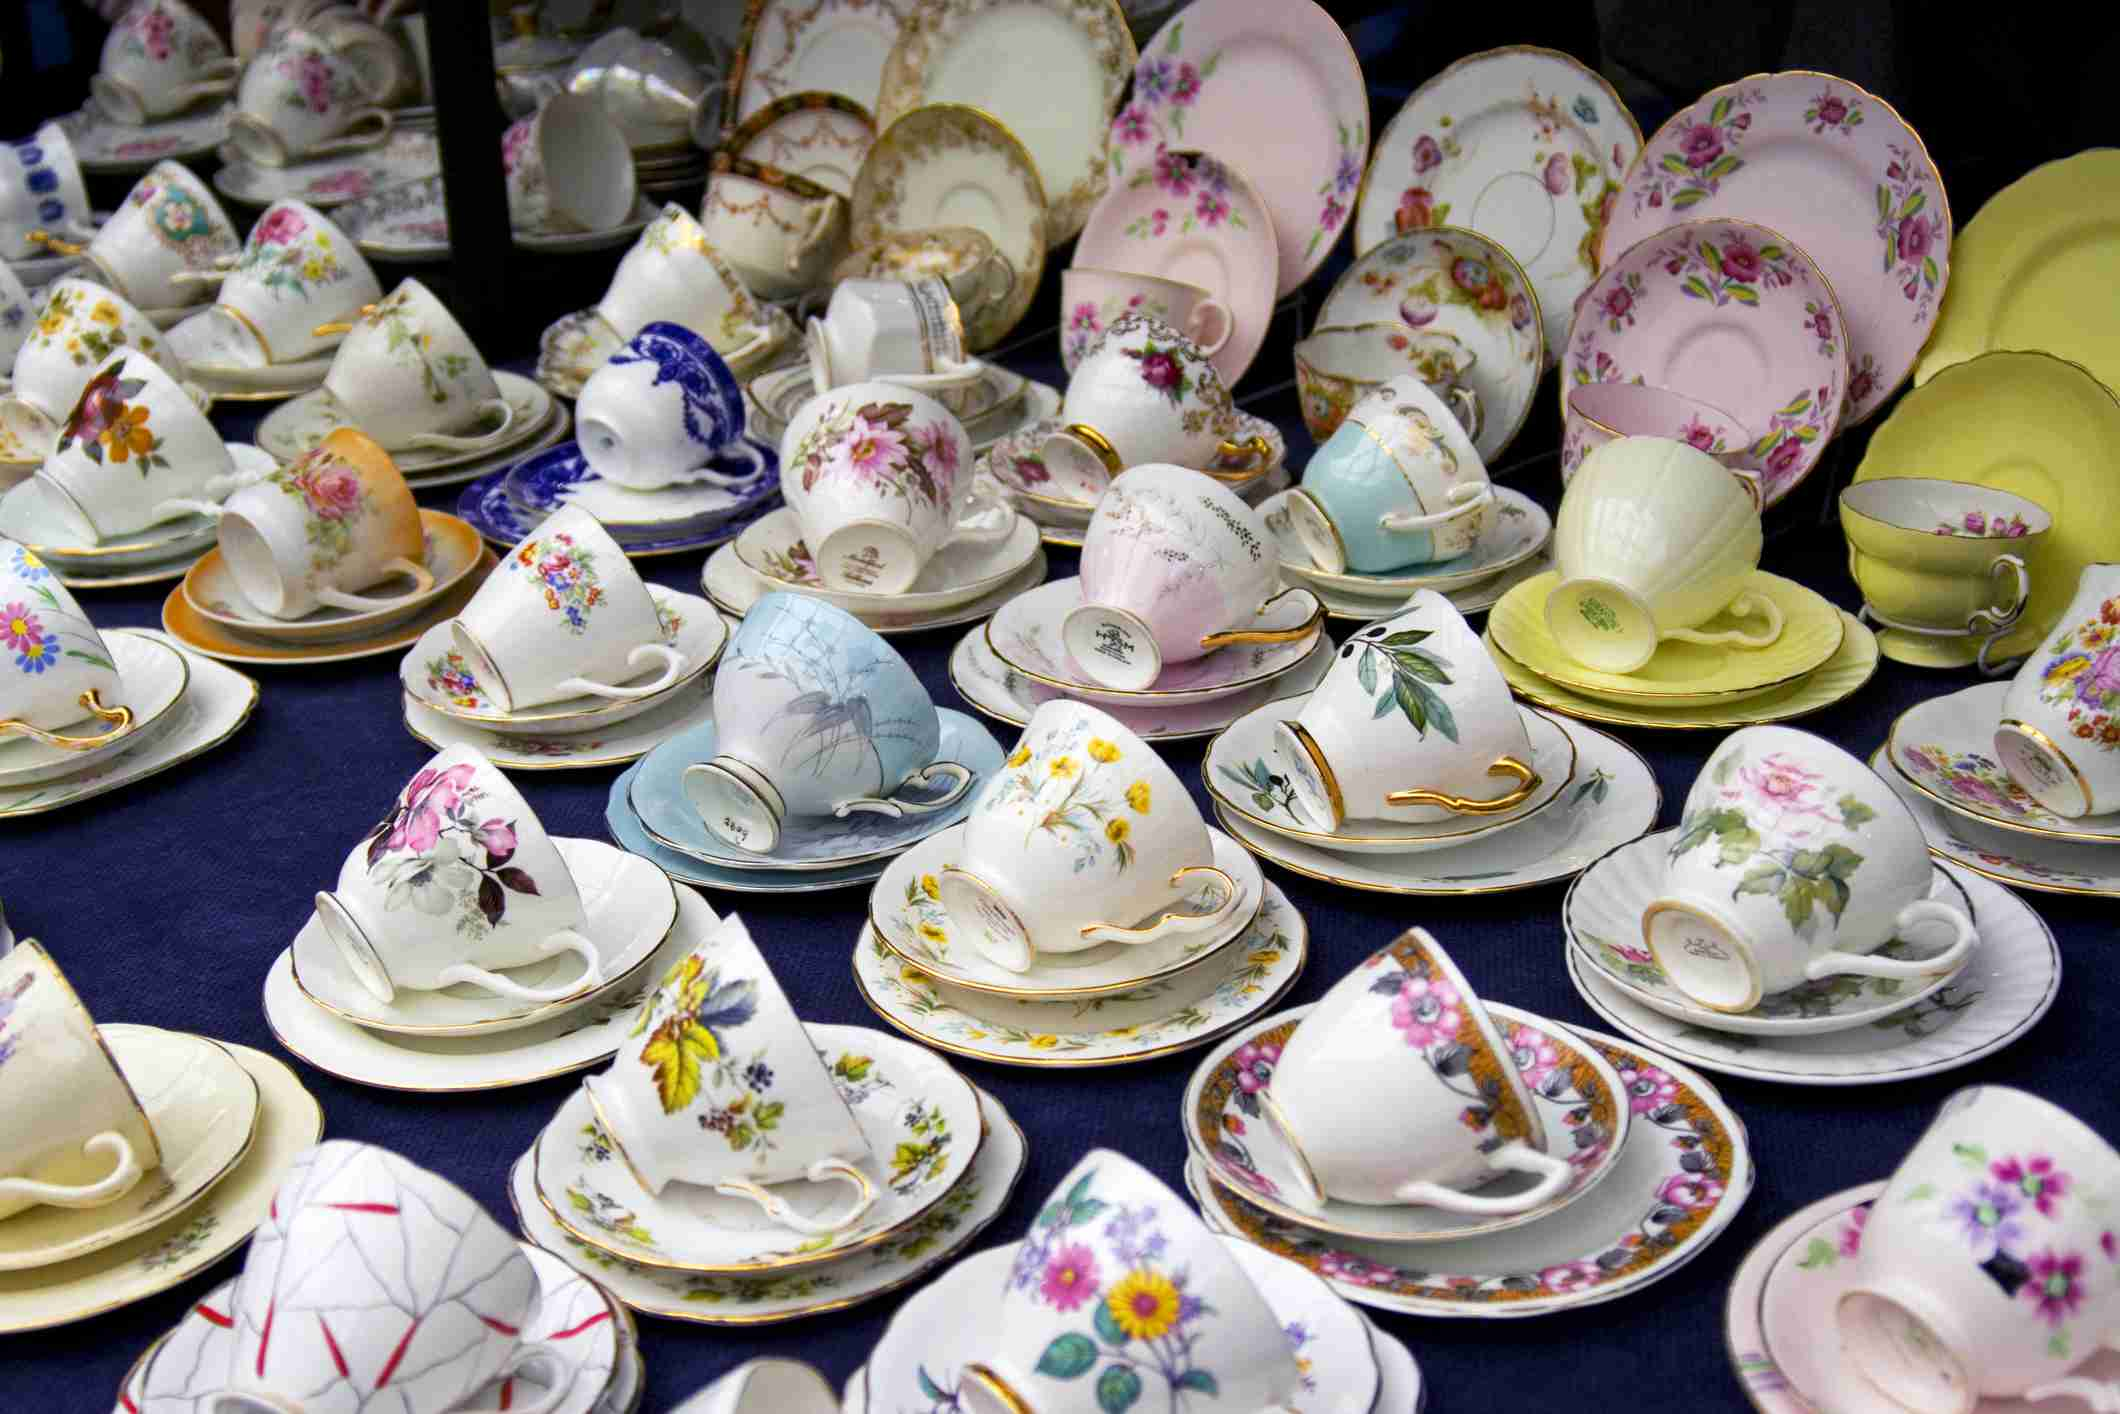 Dozens of teacups, saucers, and plates on a table.